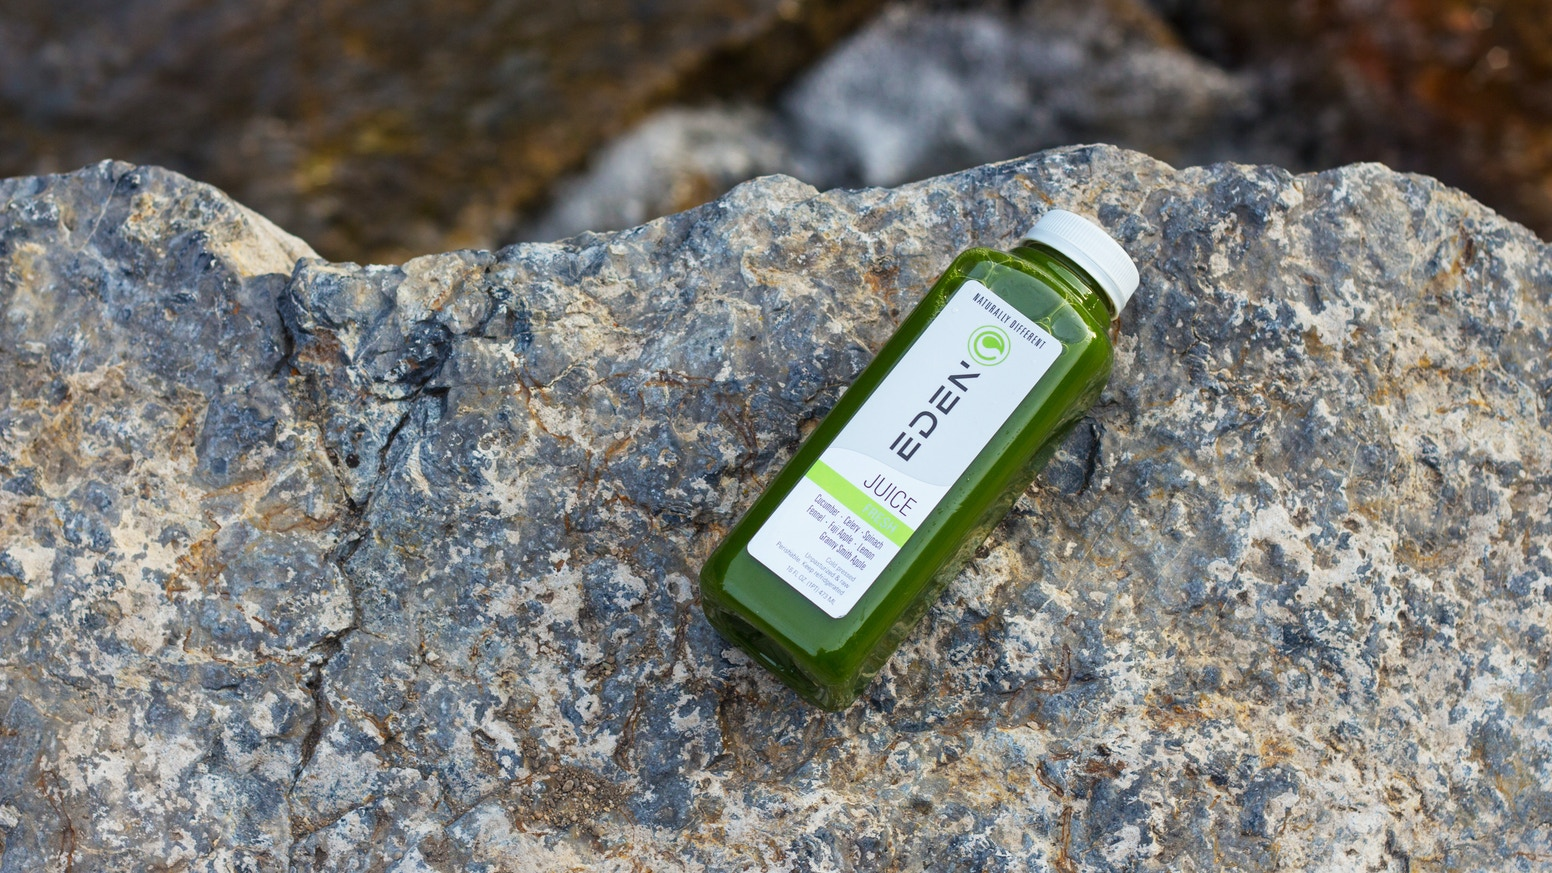 Drink Eden embodies the belief that diversity and imperfections aren't flaws to be corrected but traits to be celebrated